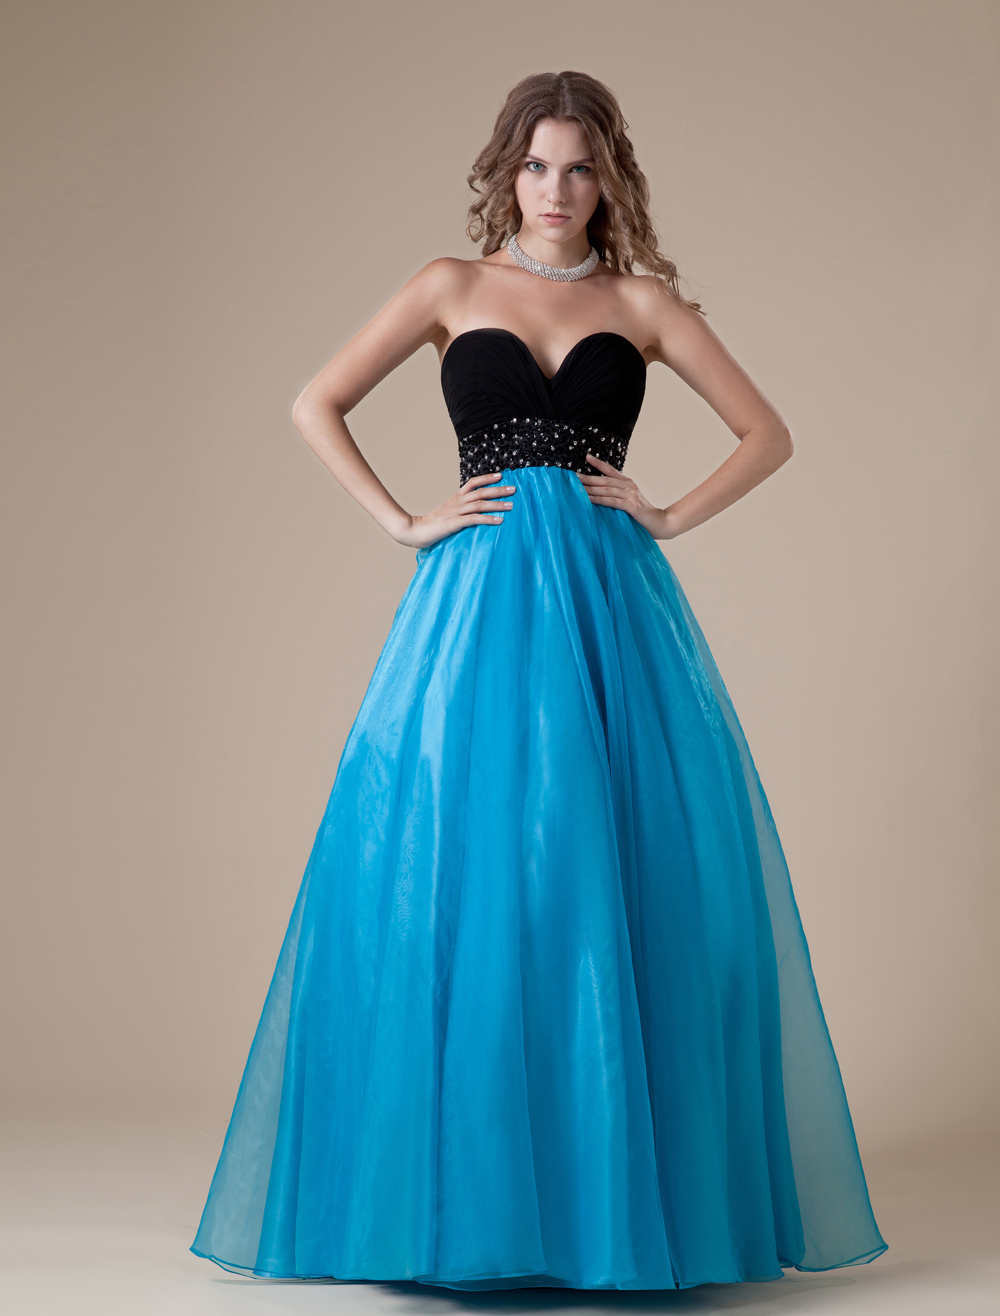 Colorful Prom Dress Coupons Pictures - Wedding Dress Ideas ...